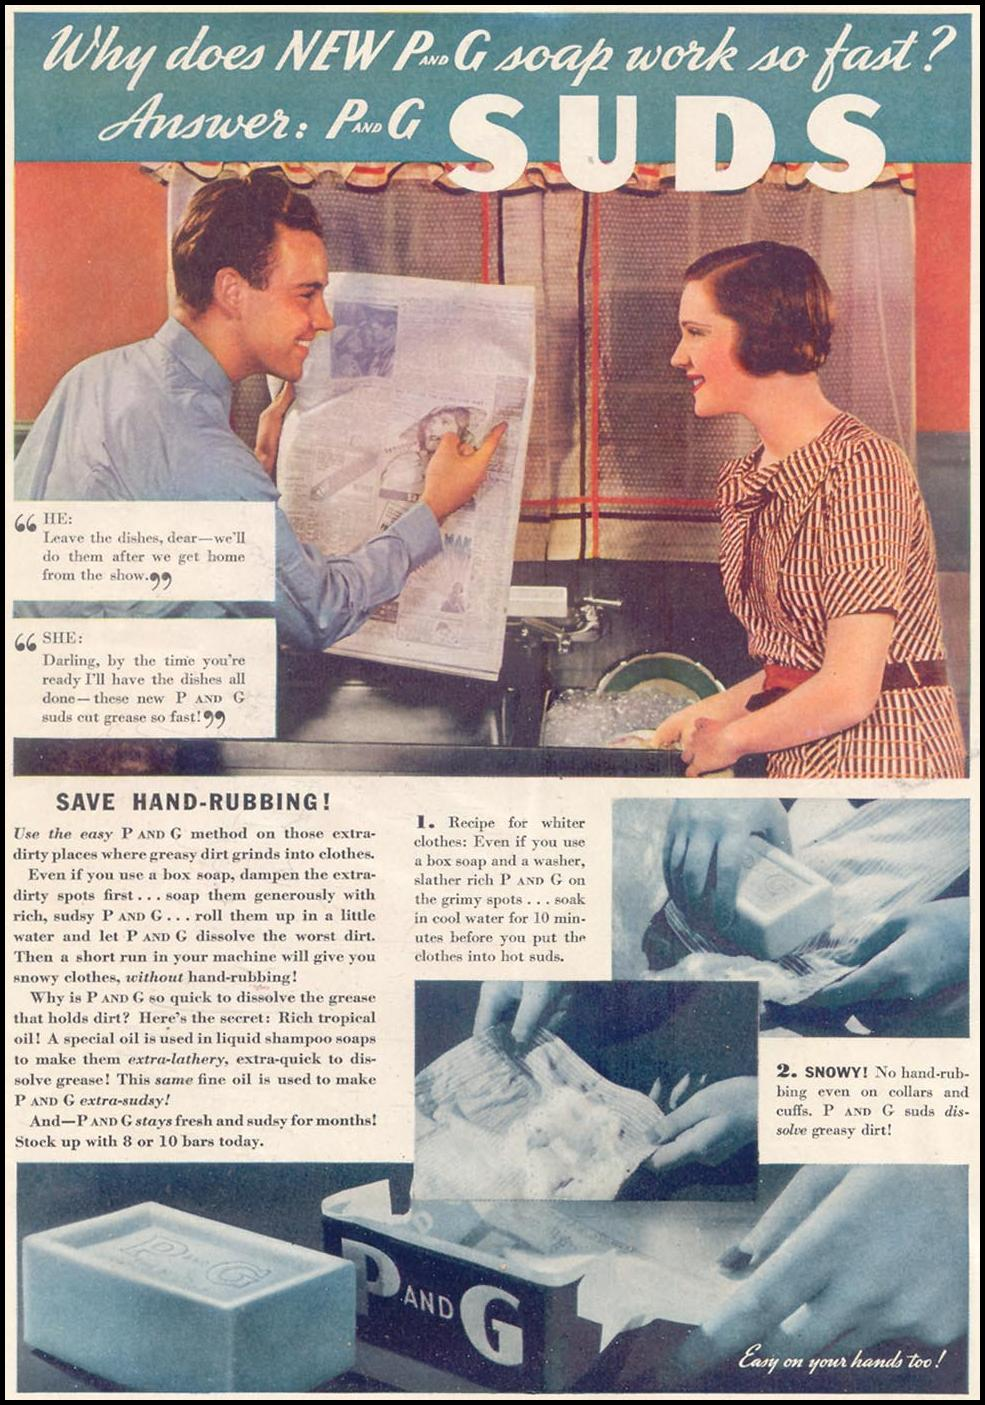 P AND G SOAP GOOD HOUSEKEEPING 03/01/1935